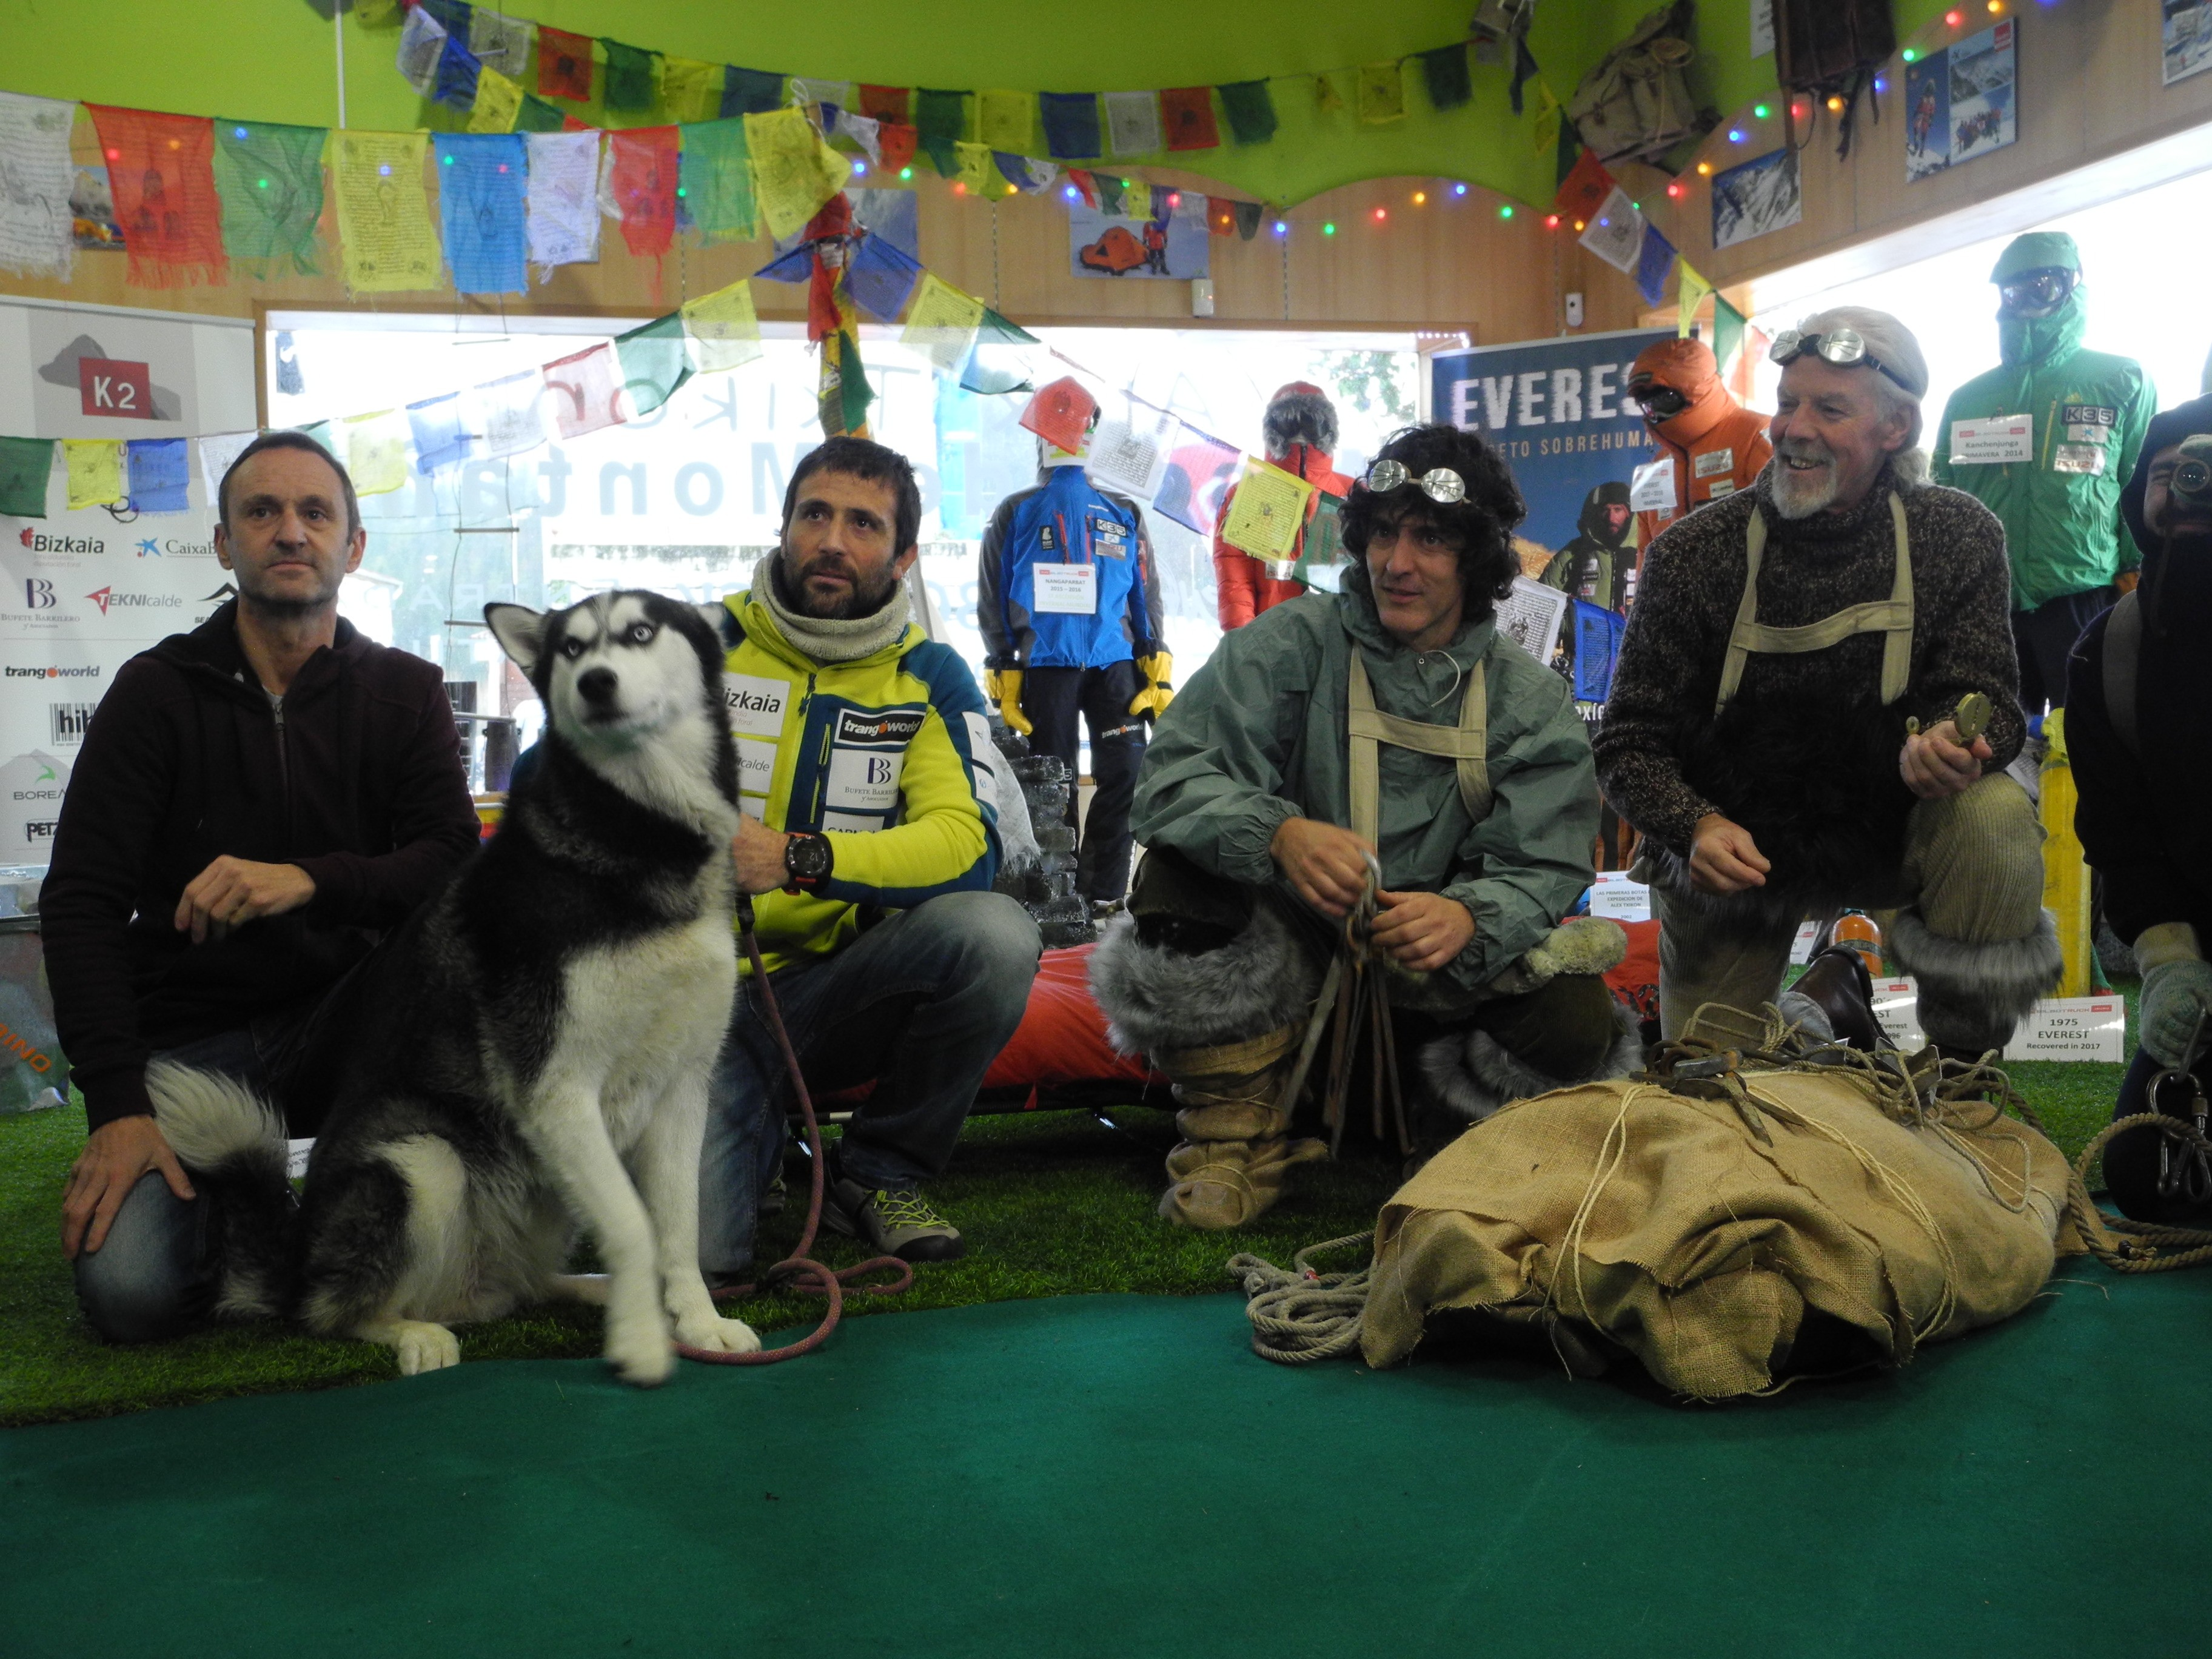 Alex Txikon, de vuelta al Everest invernal